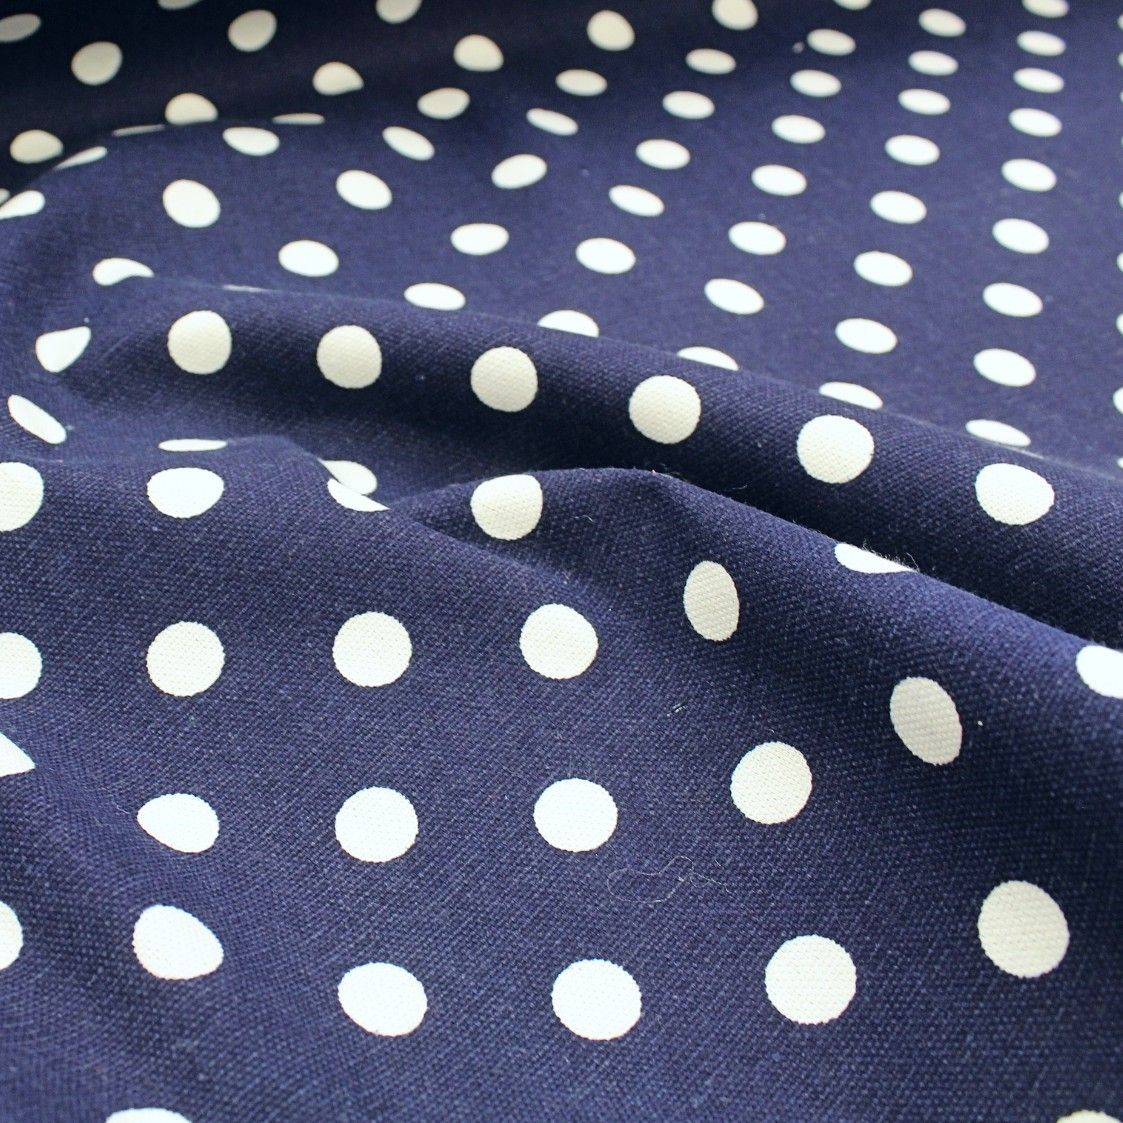 heavyweight cotton curtains soft furnishings fabric white spots on navy blue